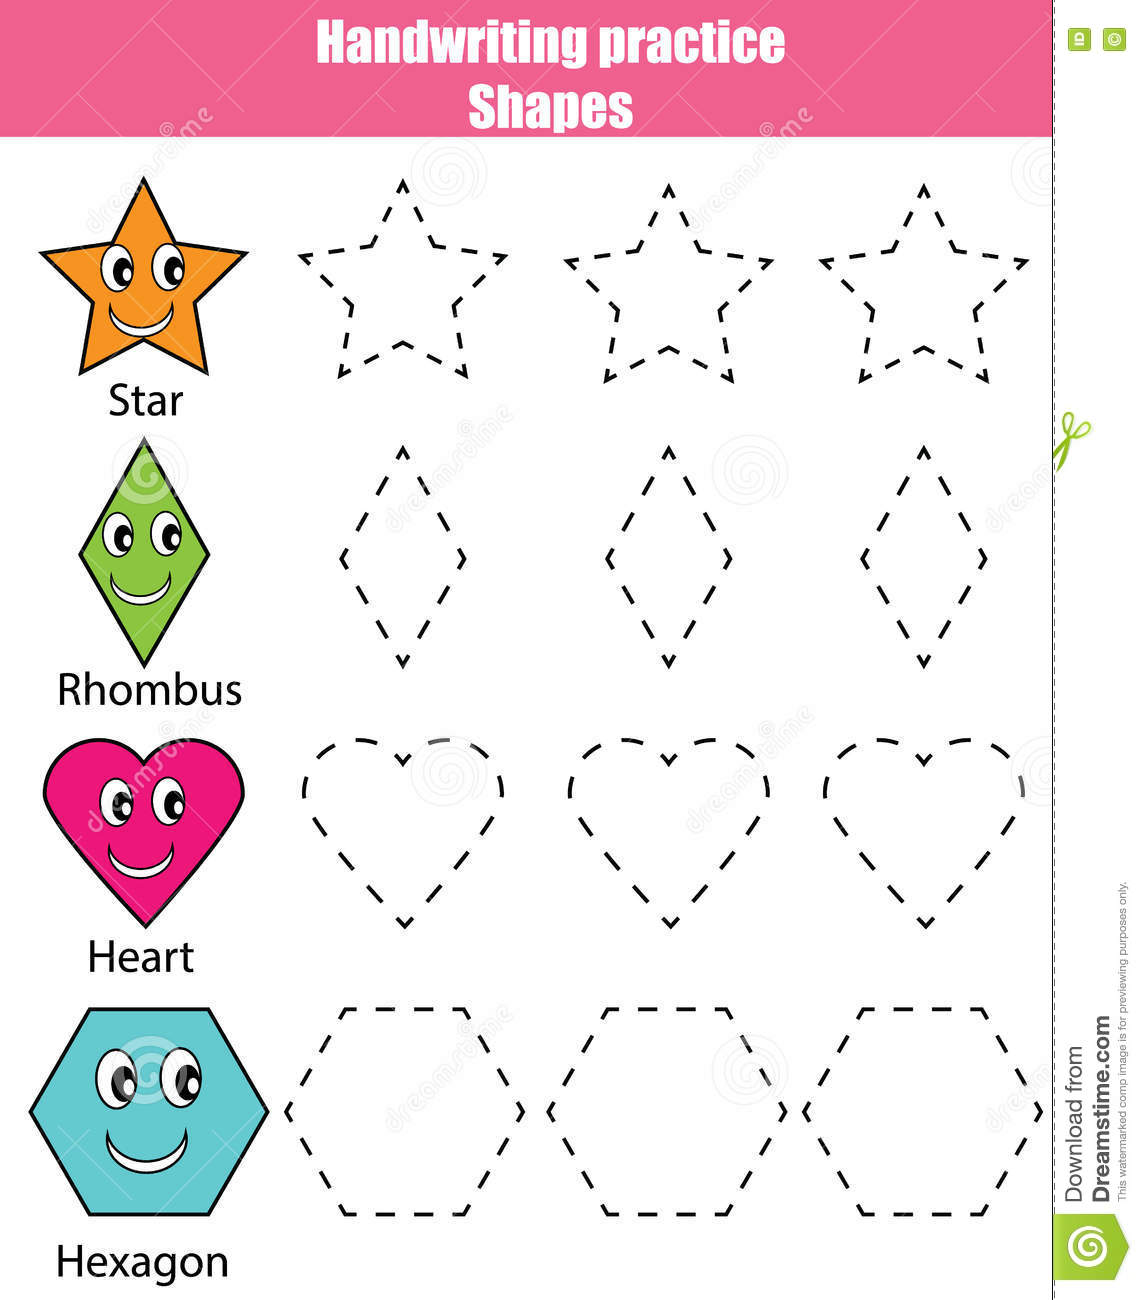 Handwriting Practice Sheet Educational Children Game Kids Activity Learning Shapes Printable